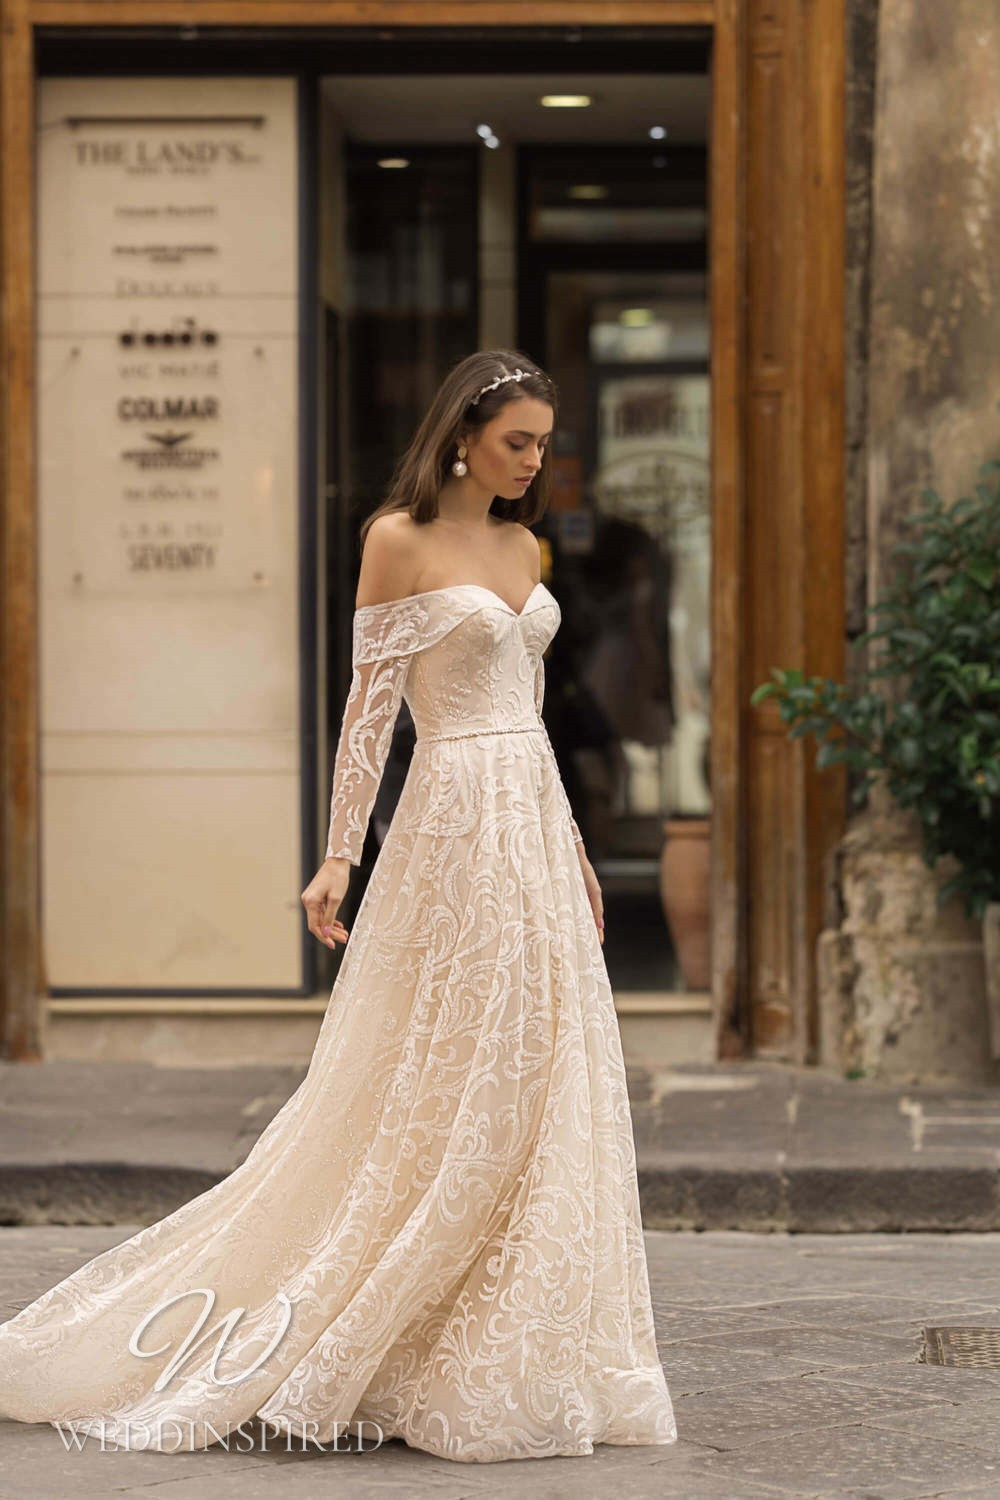 A Lussano 2021 blush off the shoulder A-line wedding dress with long sleeves